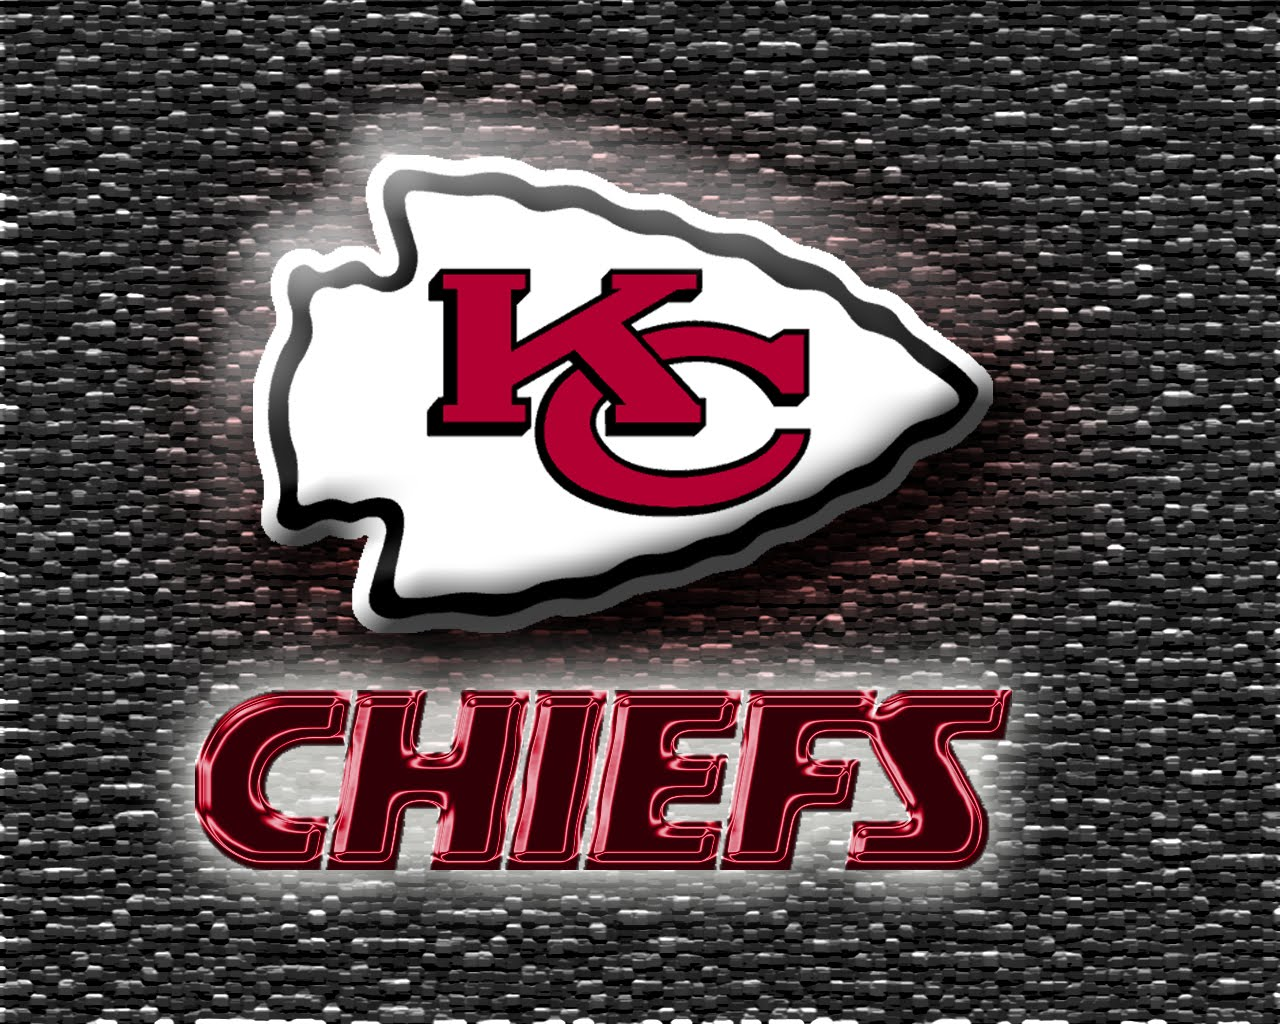 3bpblogspot BQ0SqifjNcg S7TuQx9NcZI Kansas City Chiefs Wallpapers